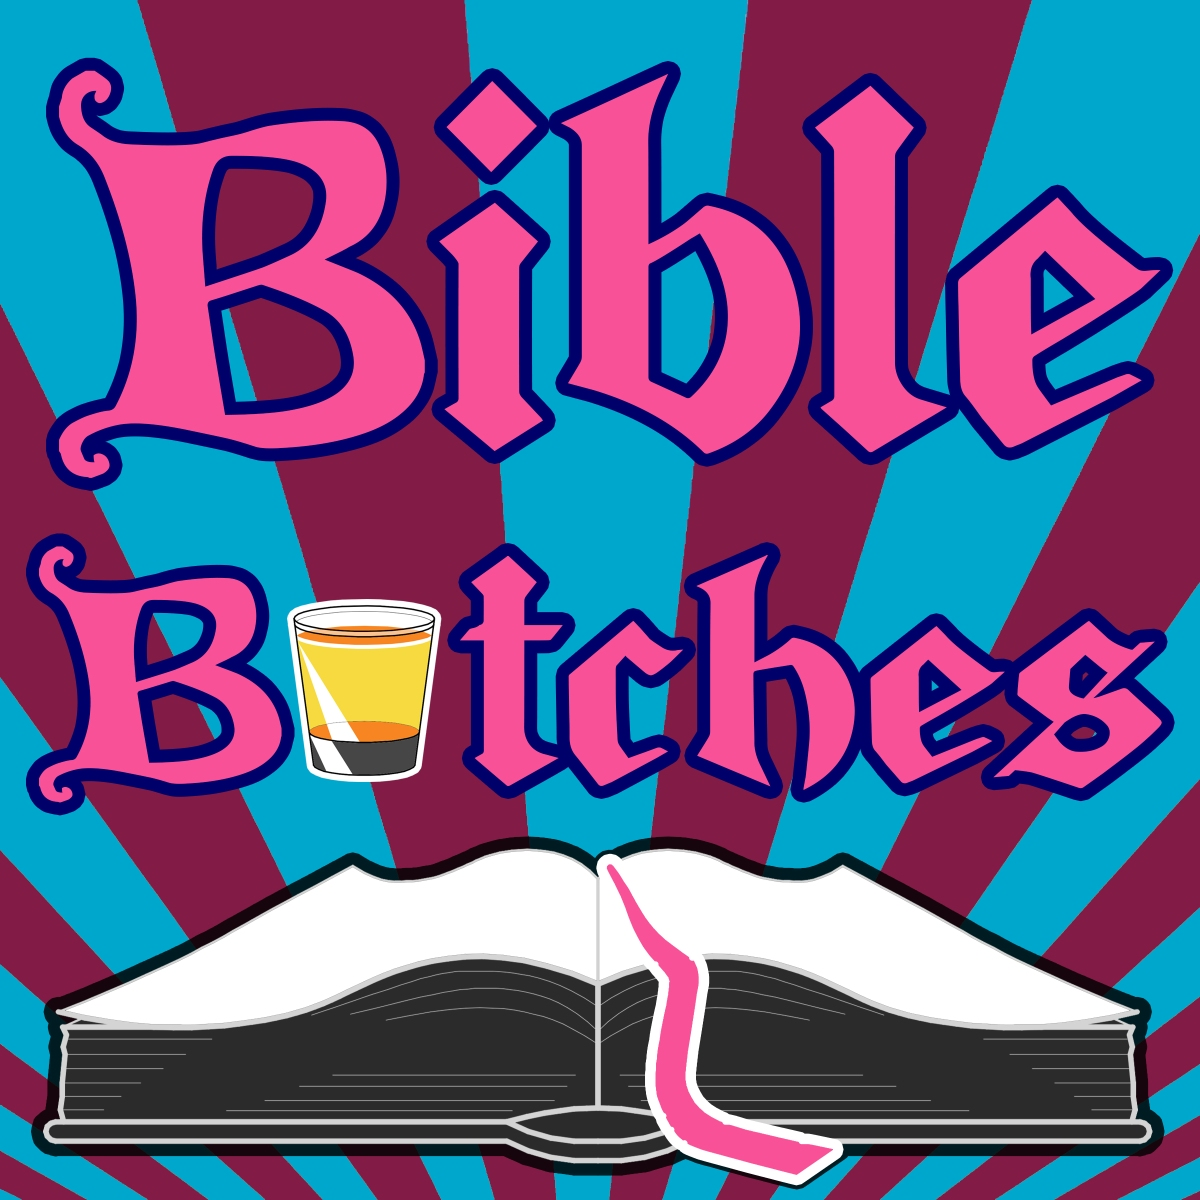 Meet the Bible Bitches: Interview with Rev. Laura Barclay and Sara Hof